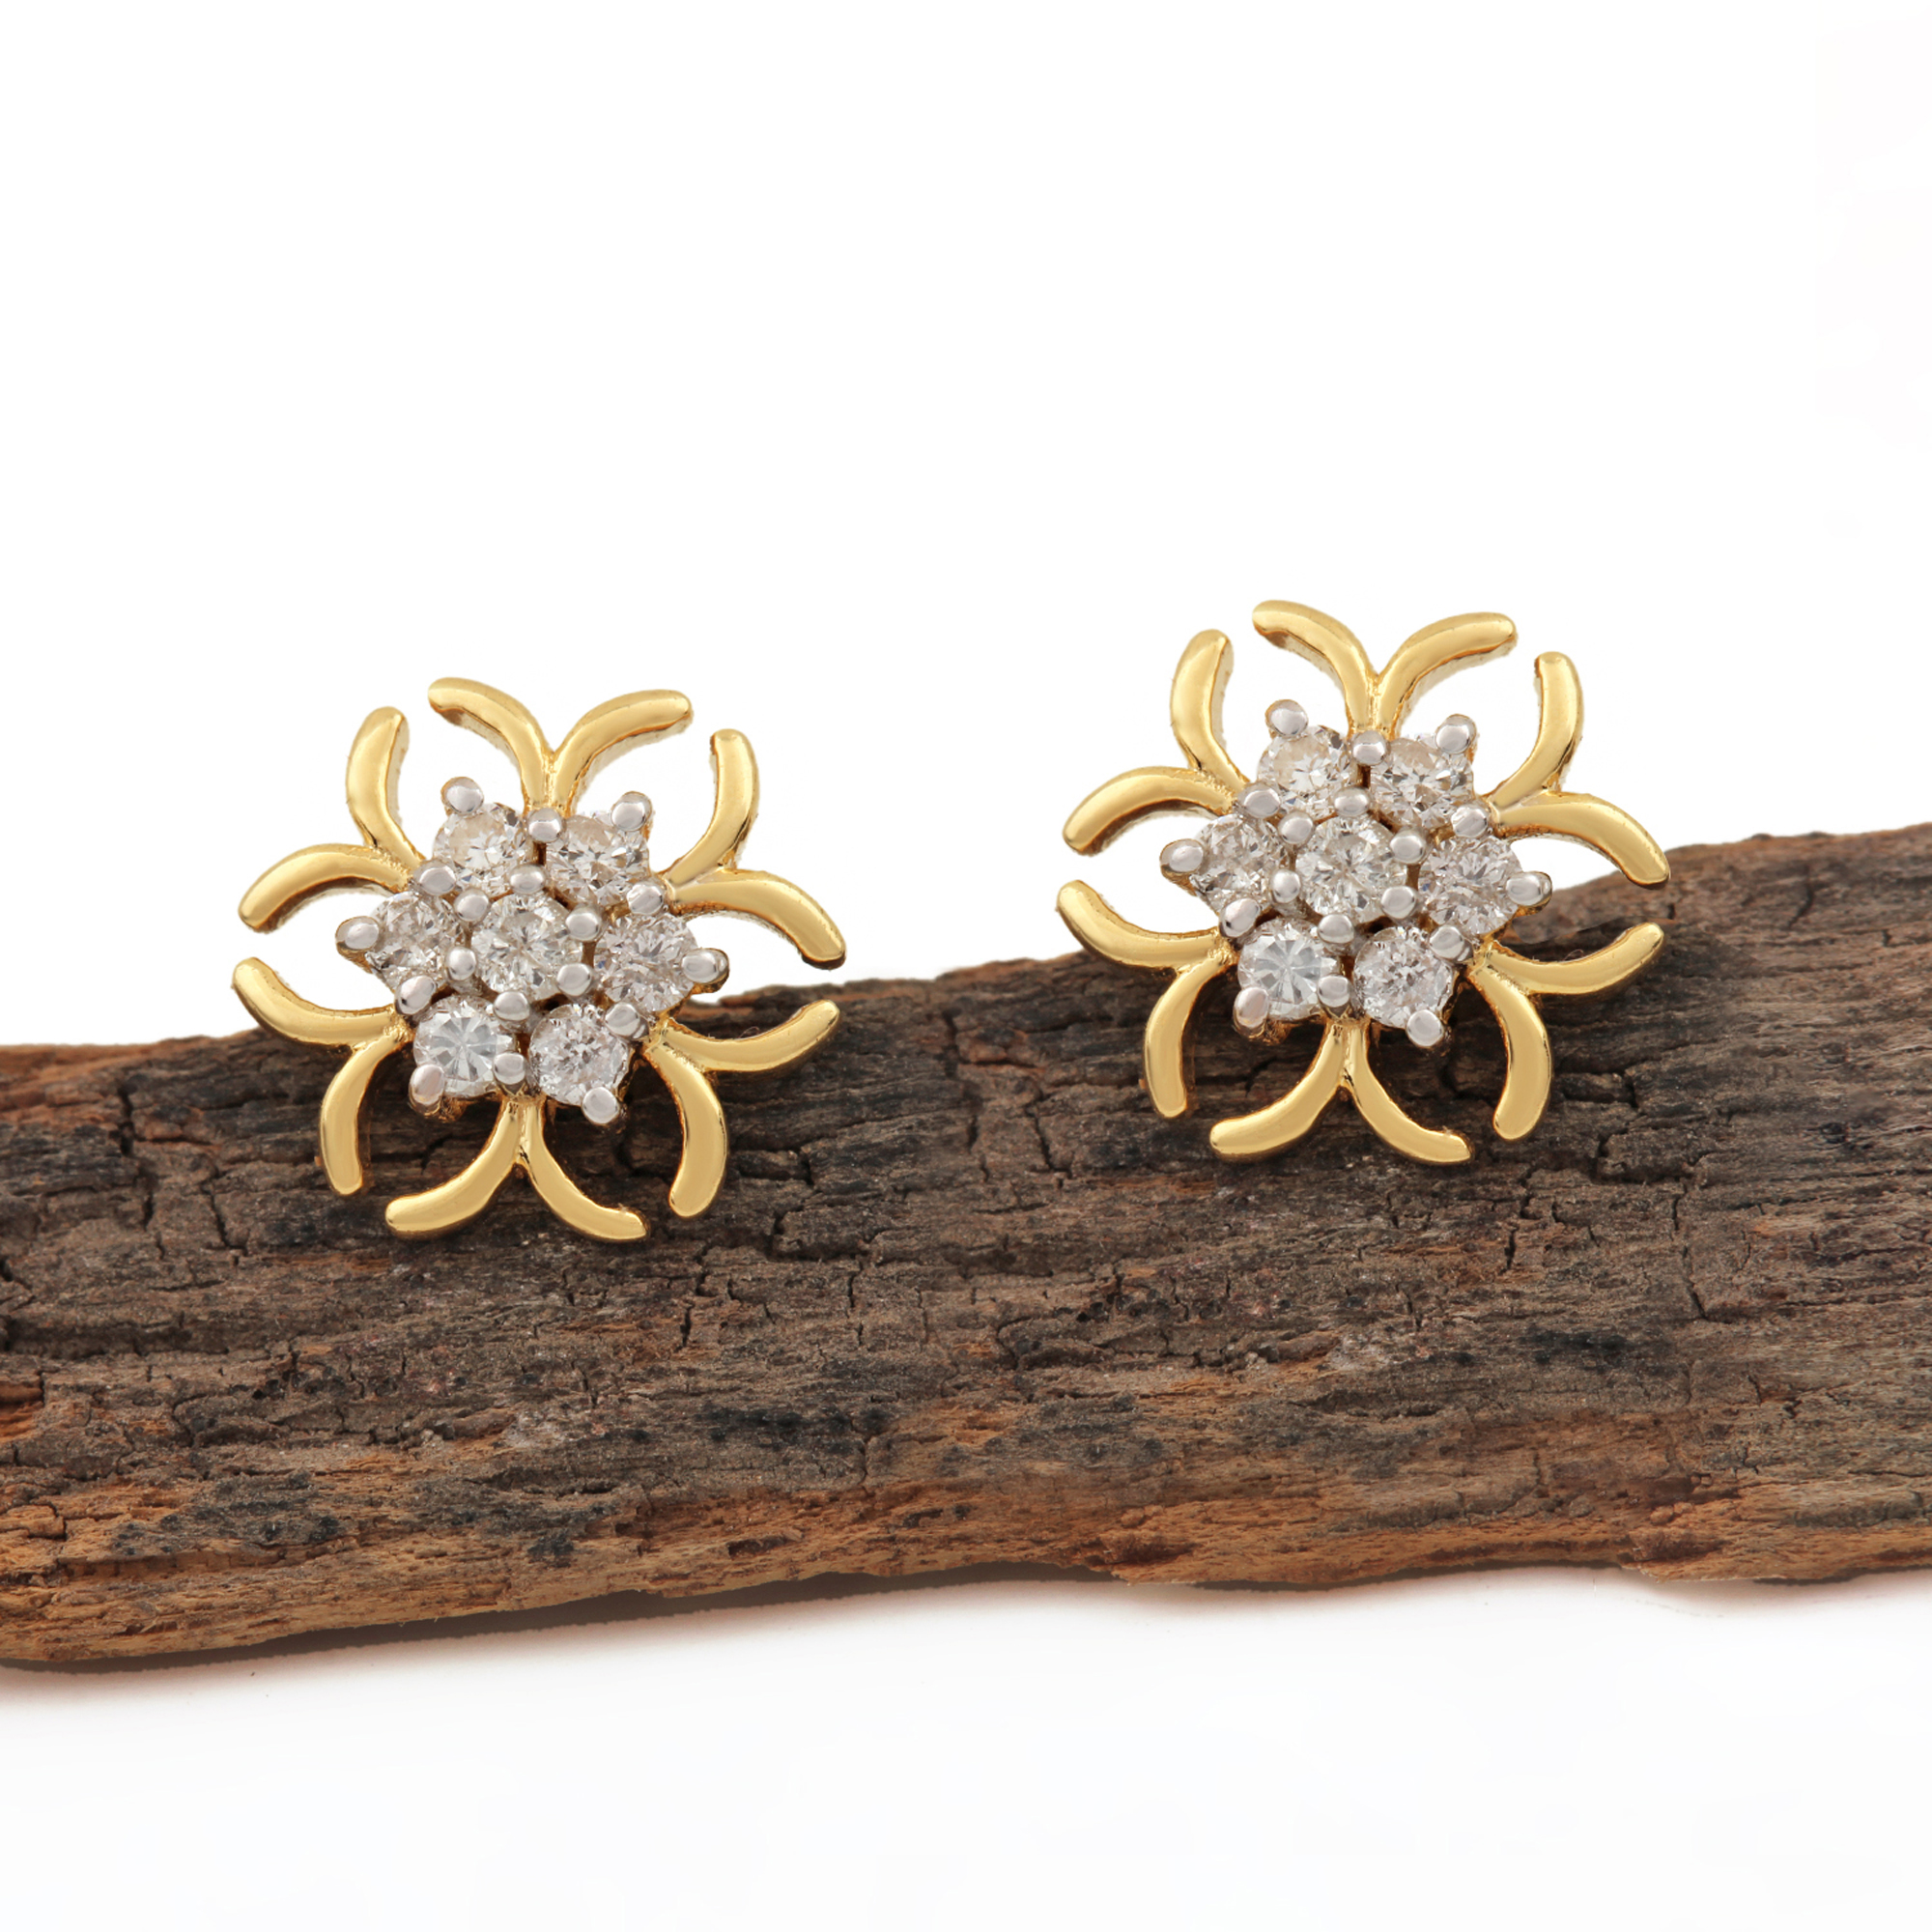 Solid 14k Gold Natural Diamond Earrings